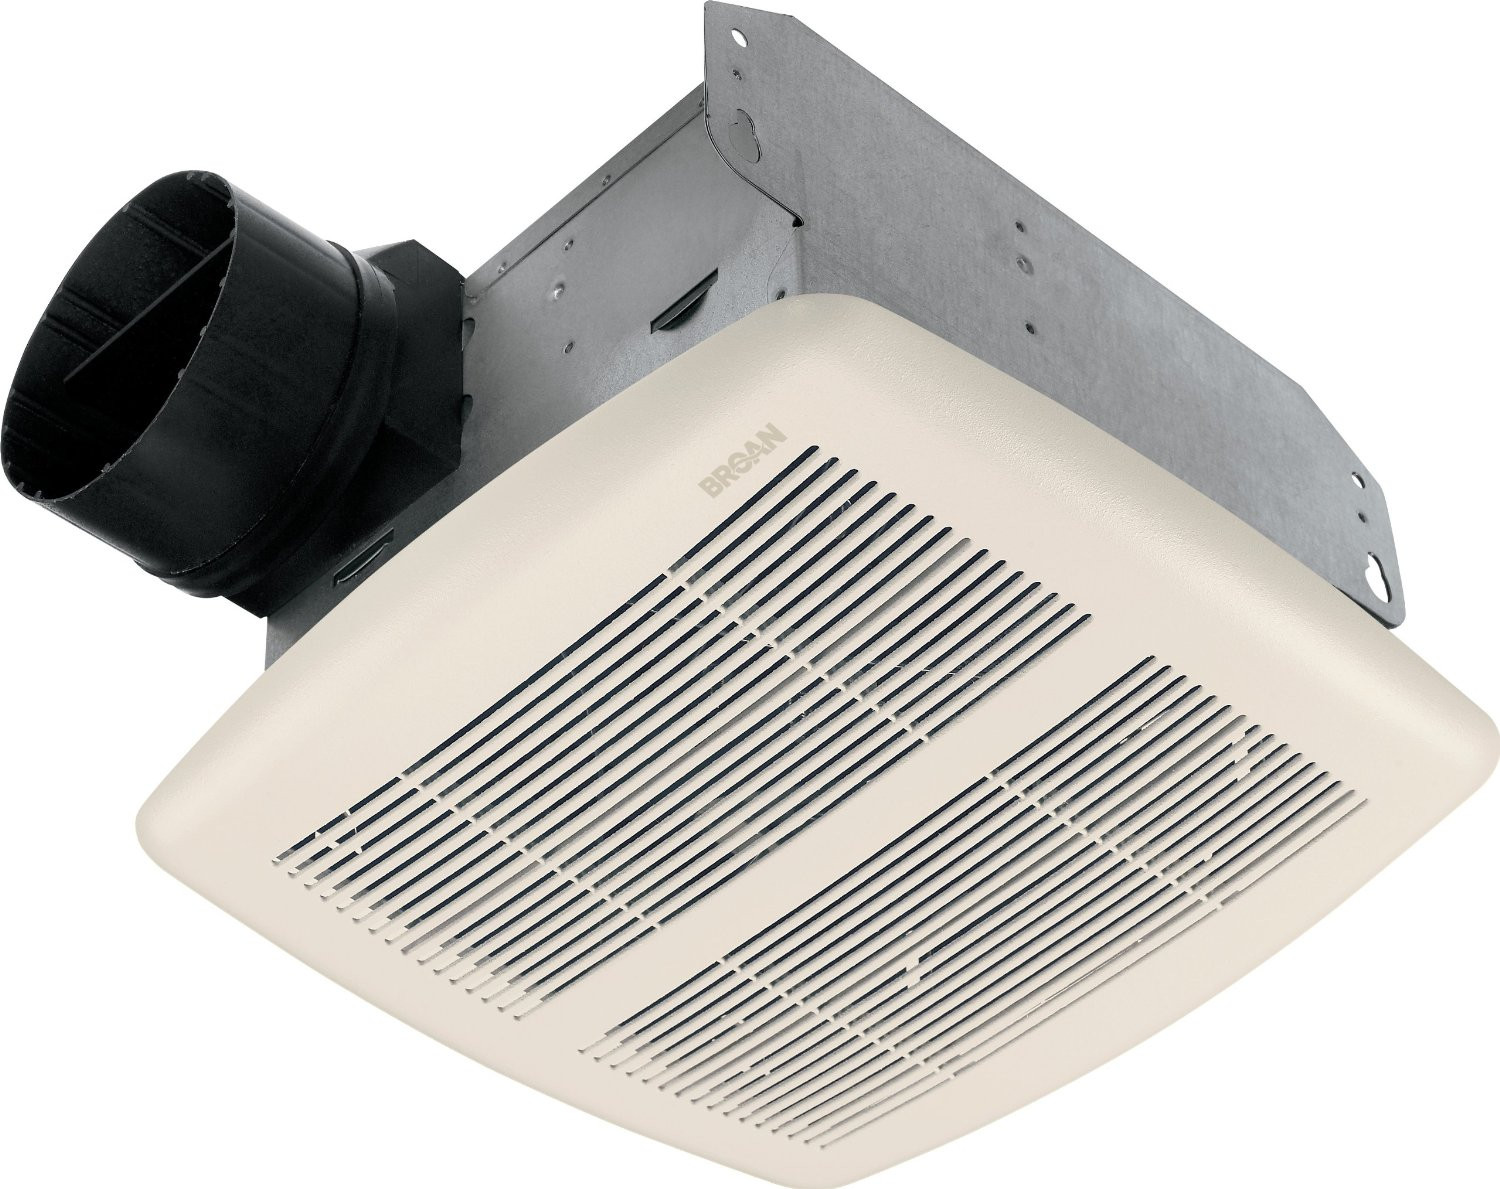 Broan 770 Quiet Bathroom Ventilation Fan for 4 Inch Ducts In White Grille